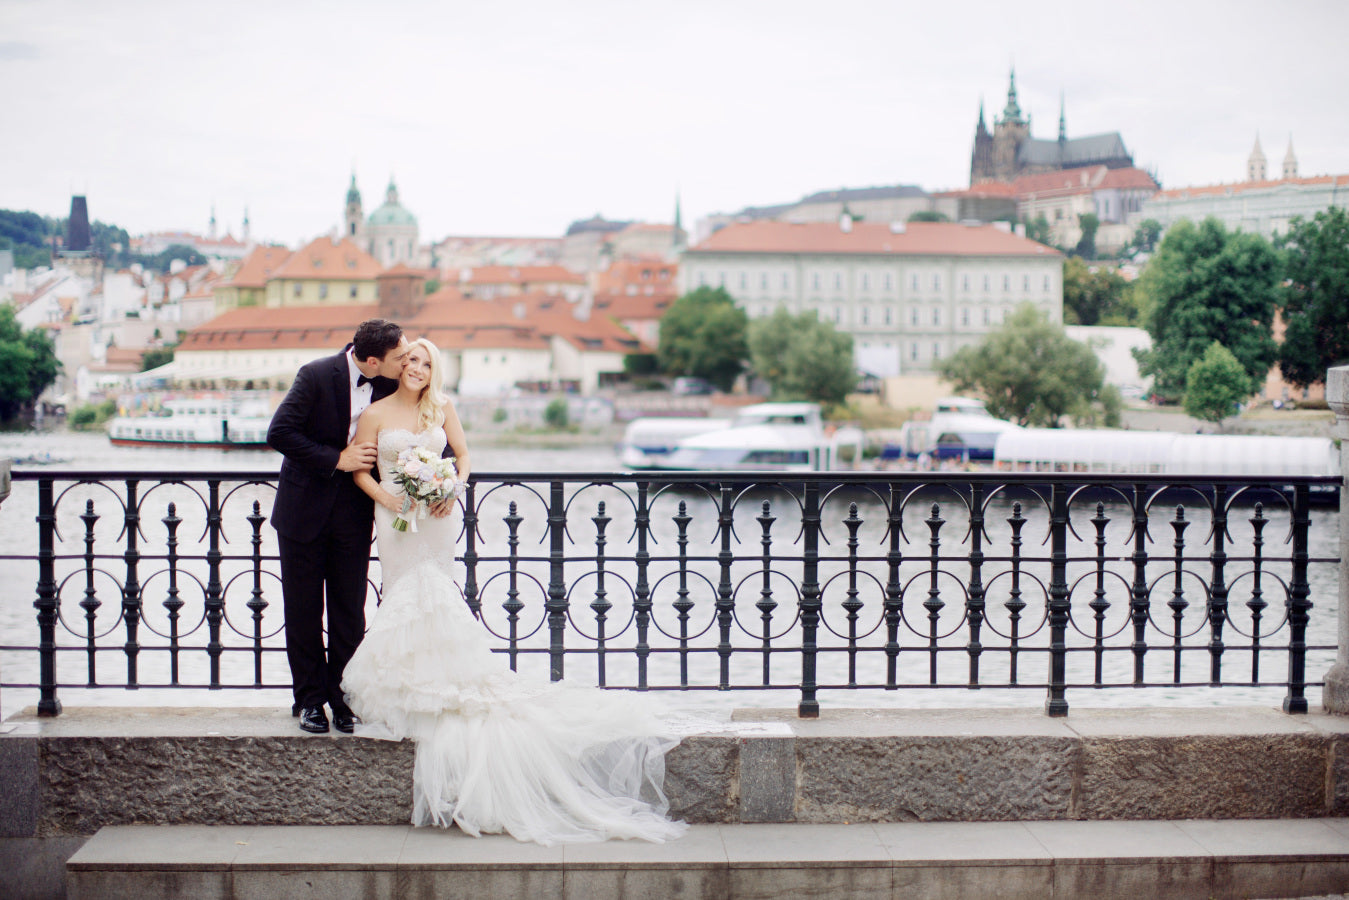 Bride and Groom Prague in Background | Summer Wedding in Prague | Photography: Stepan Vrzala